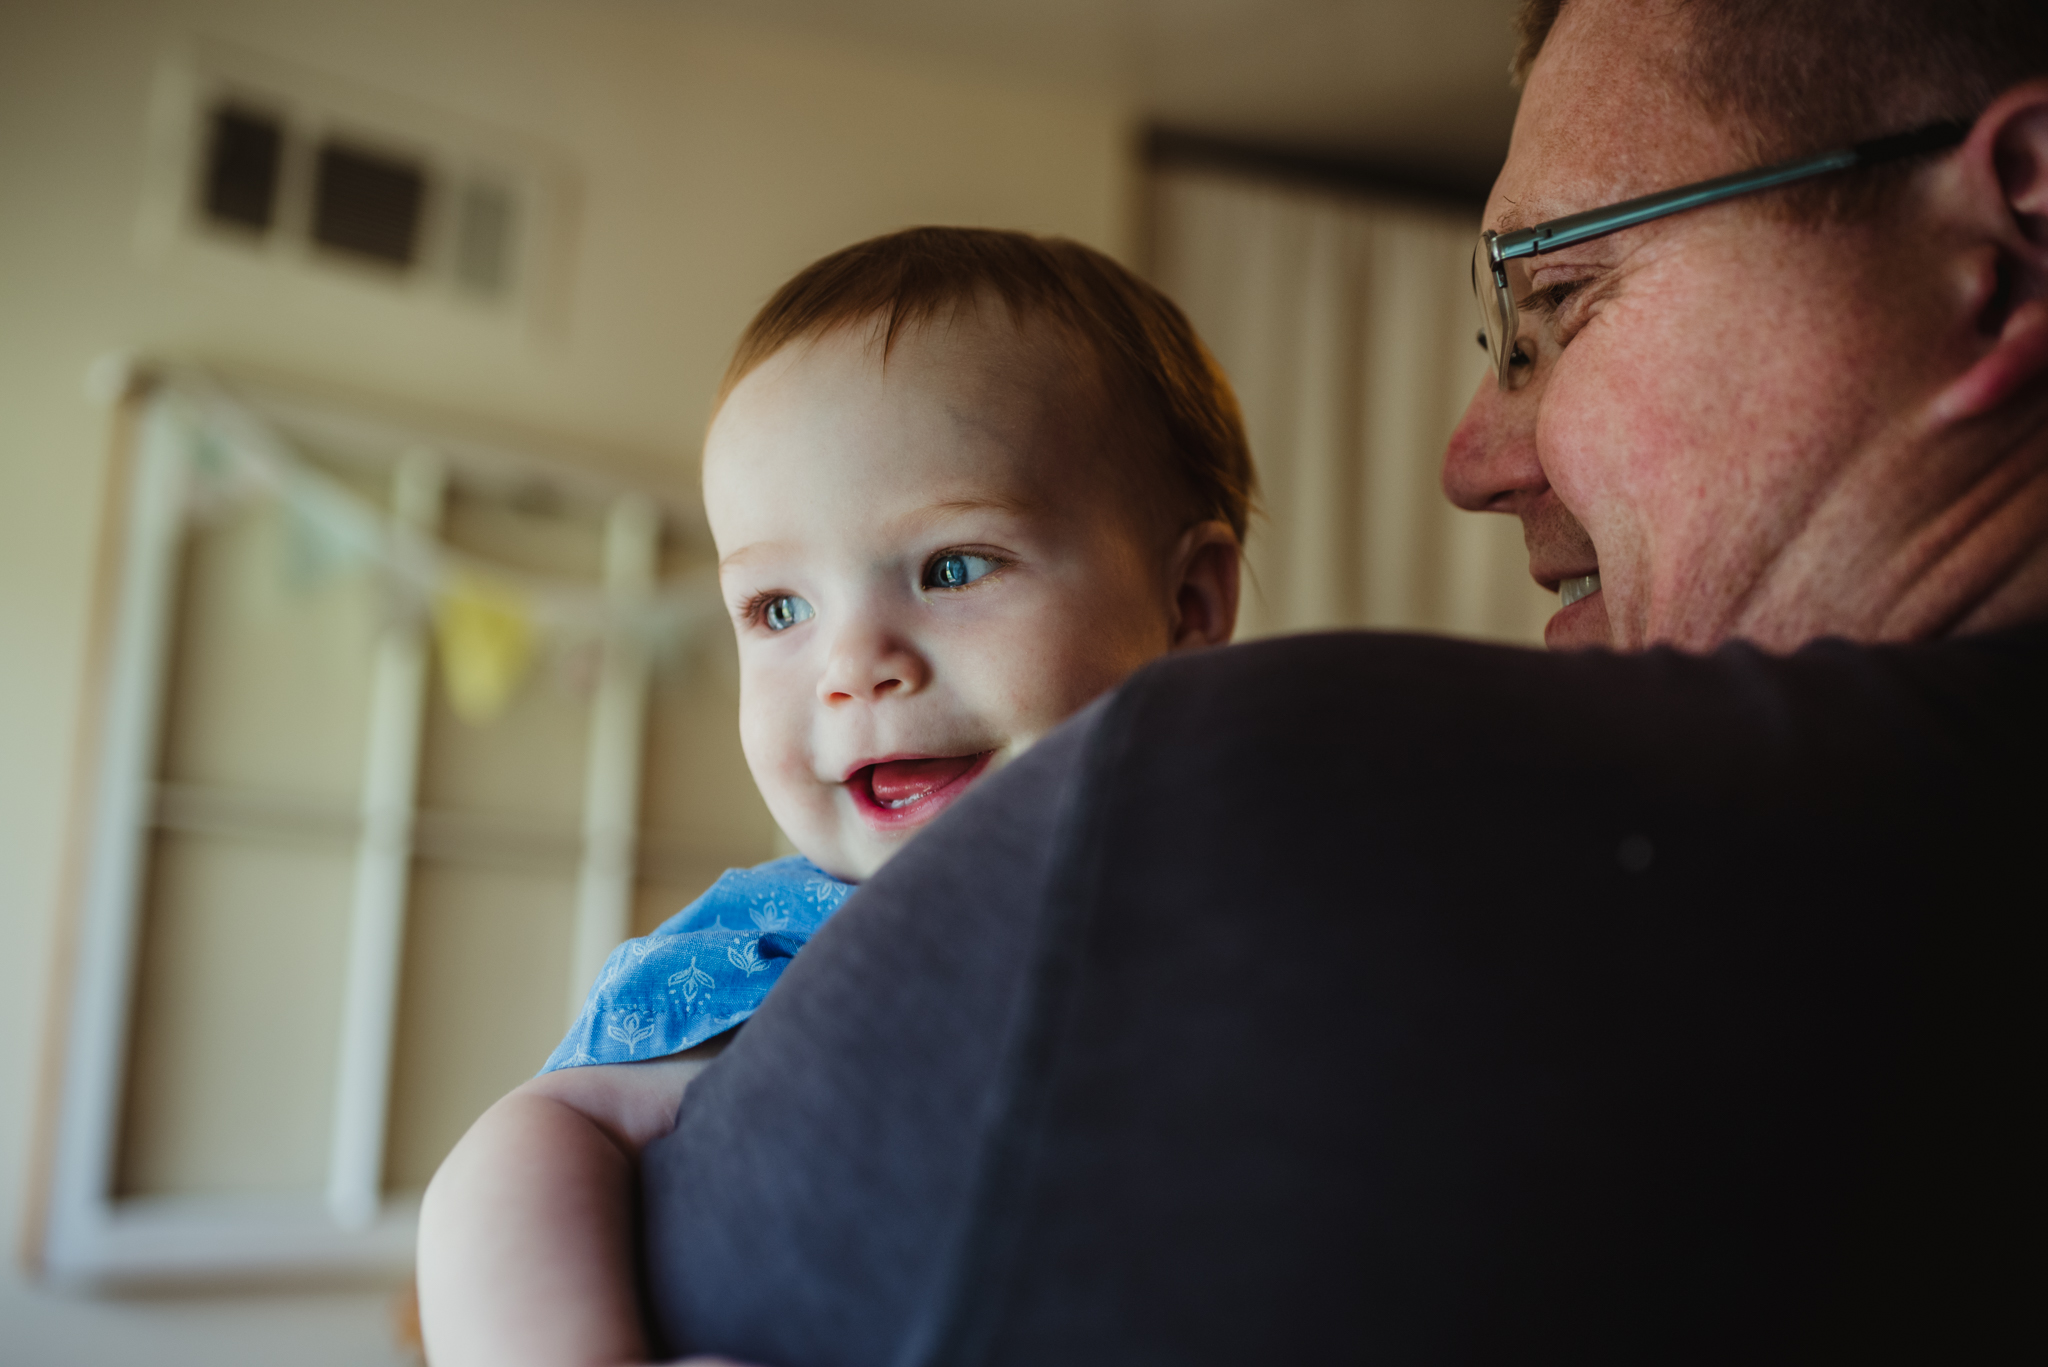 The baby giggles over Dad's shoulder in the kitchen during their lifestyle session at home in Wake Forest with Rose Trail Images.